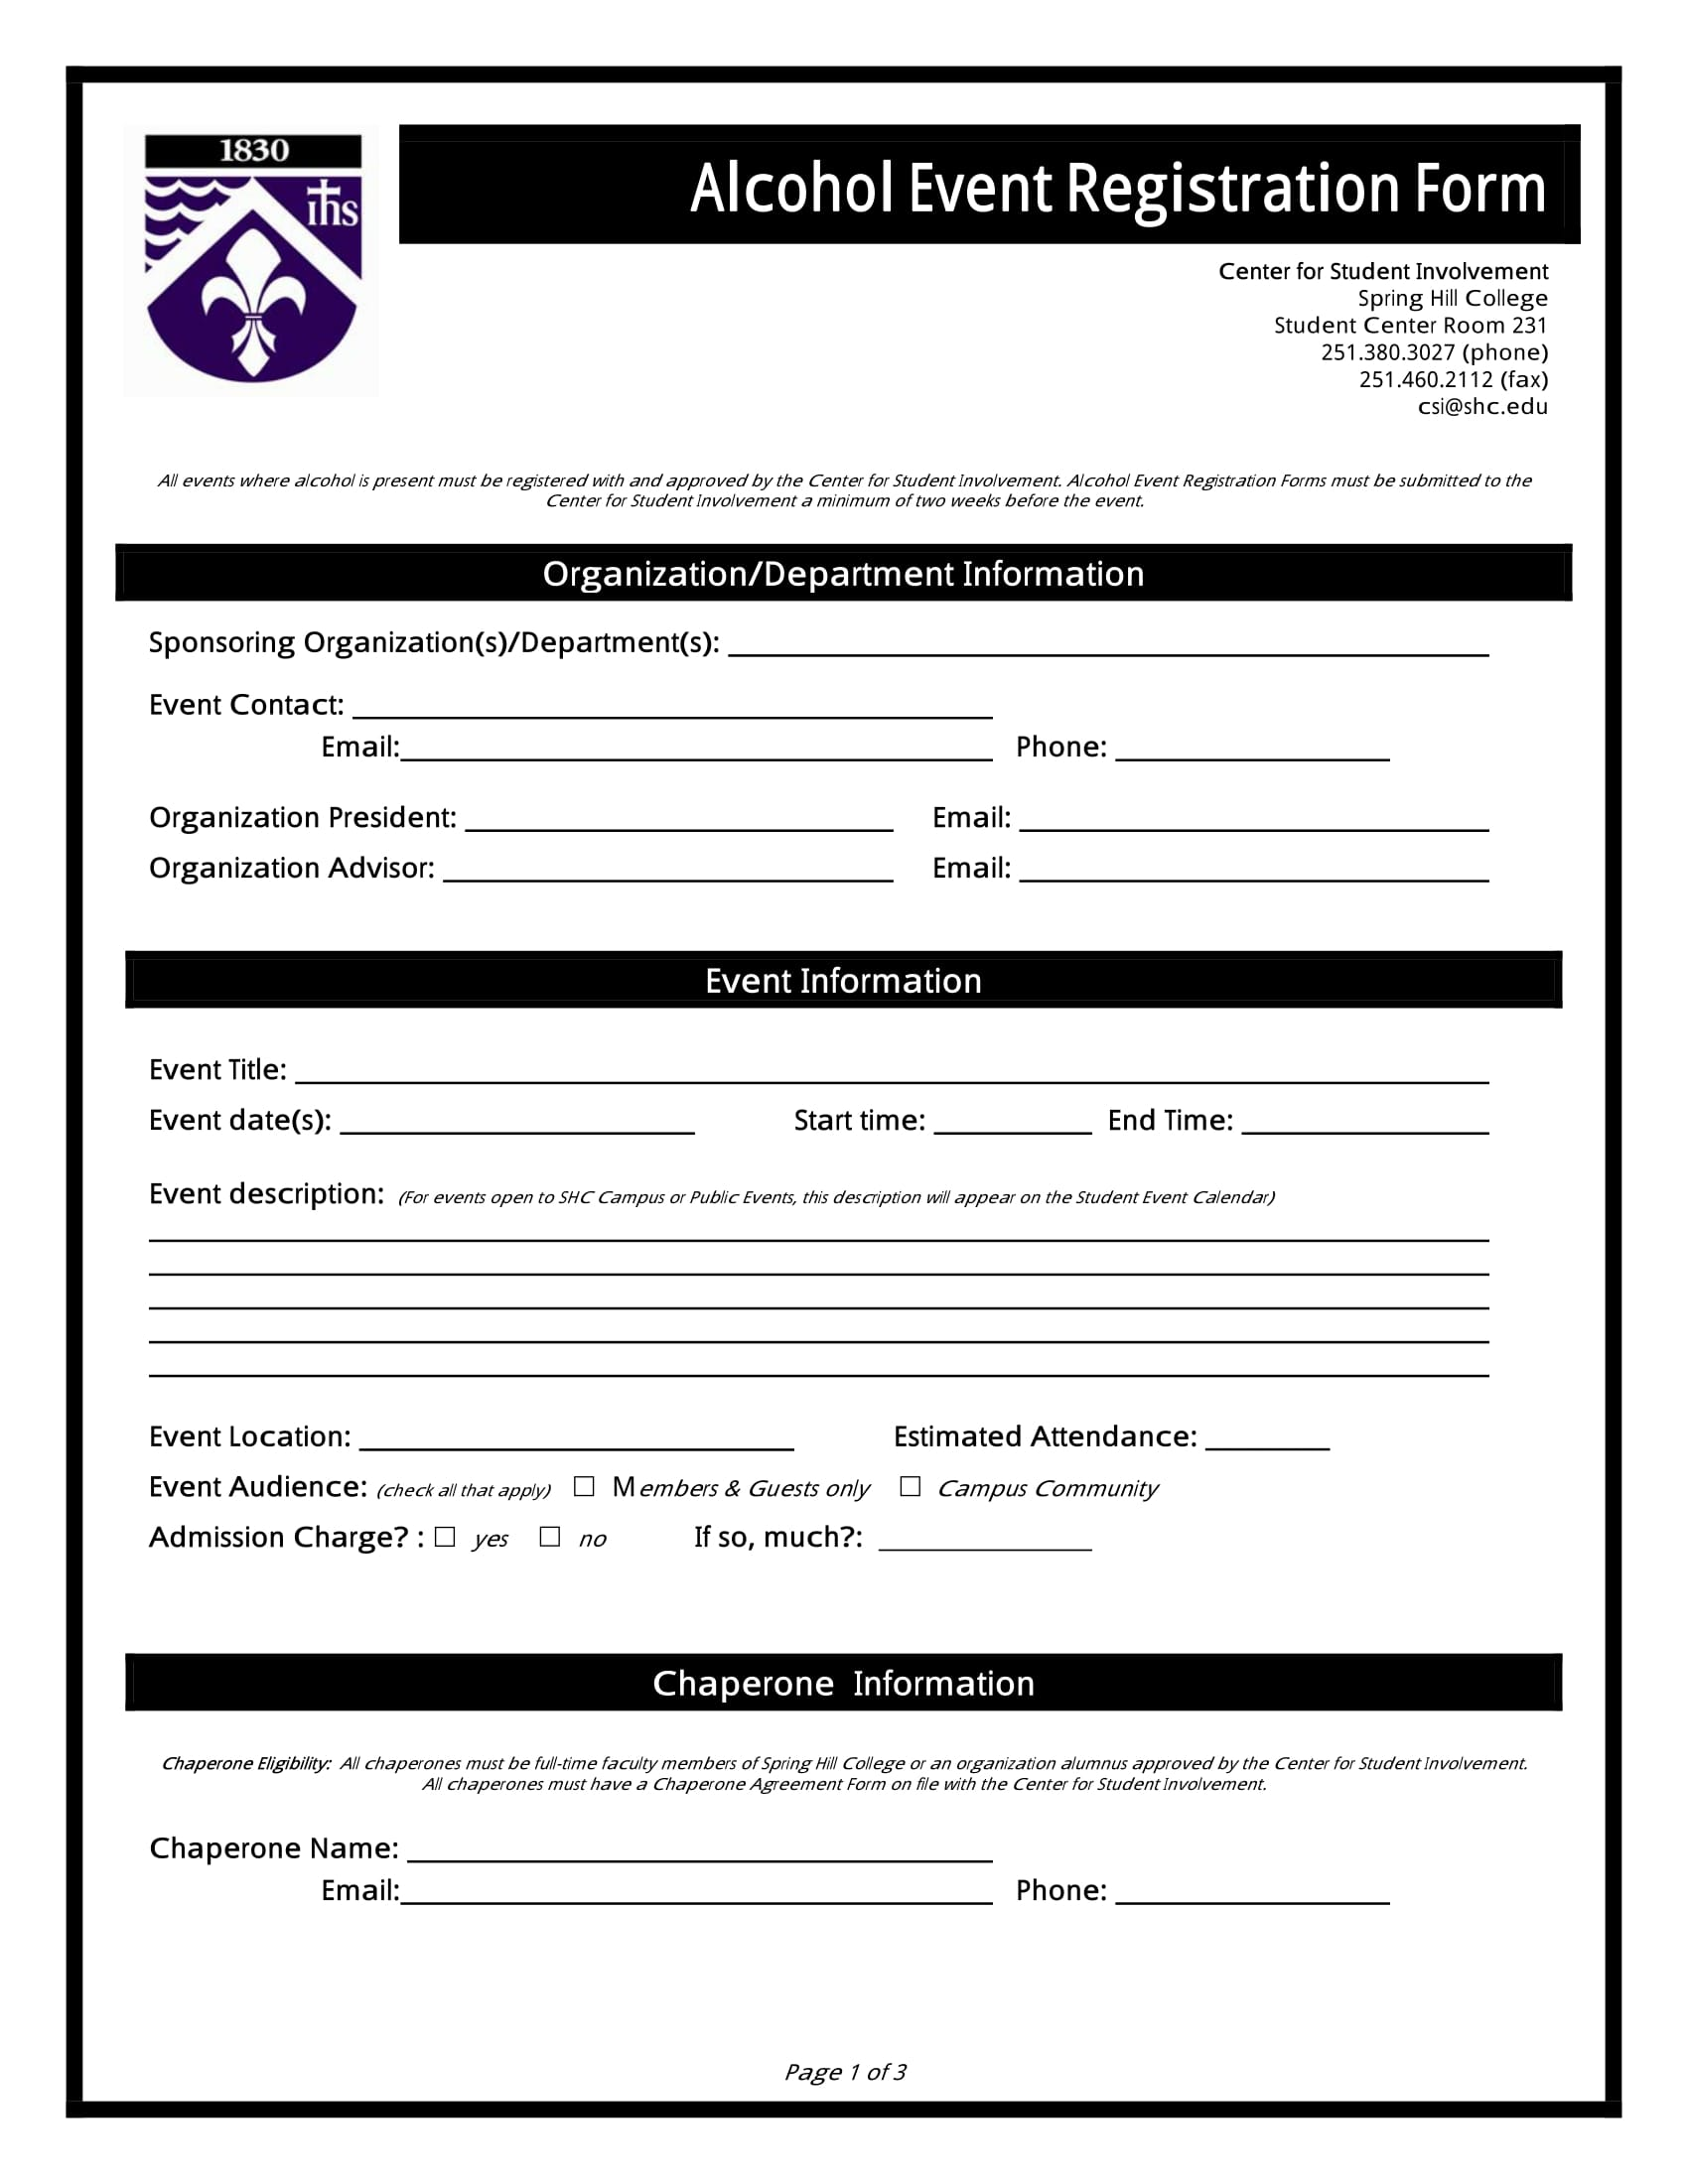 alcohol event registration form 1